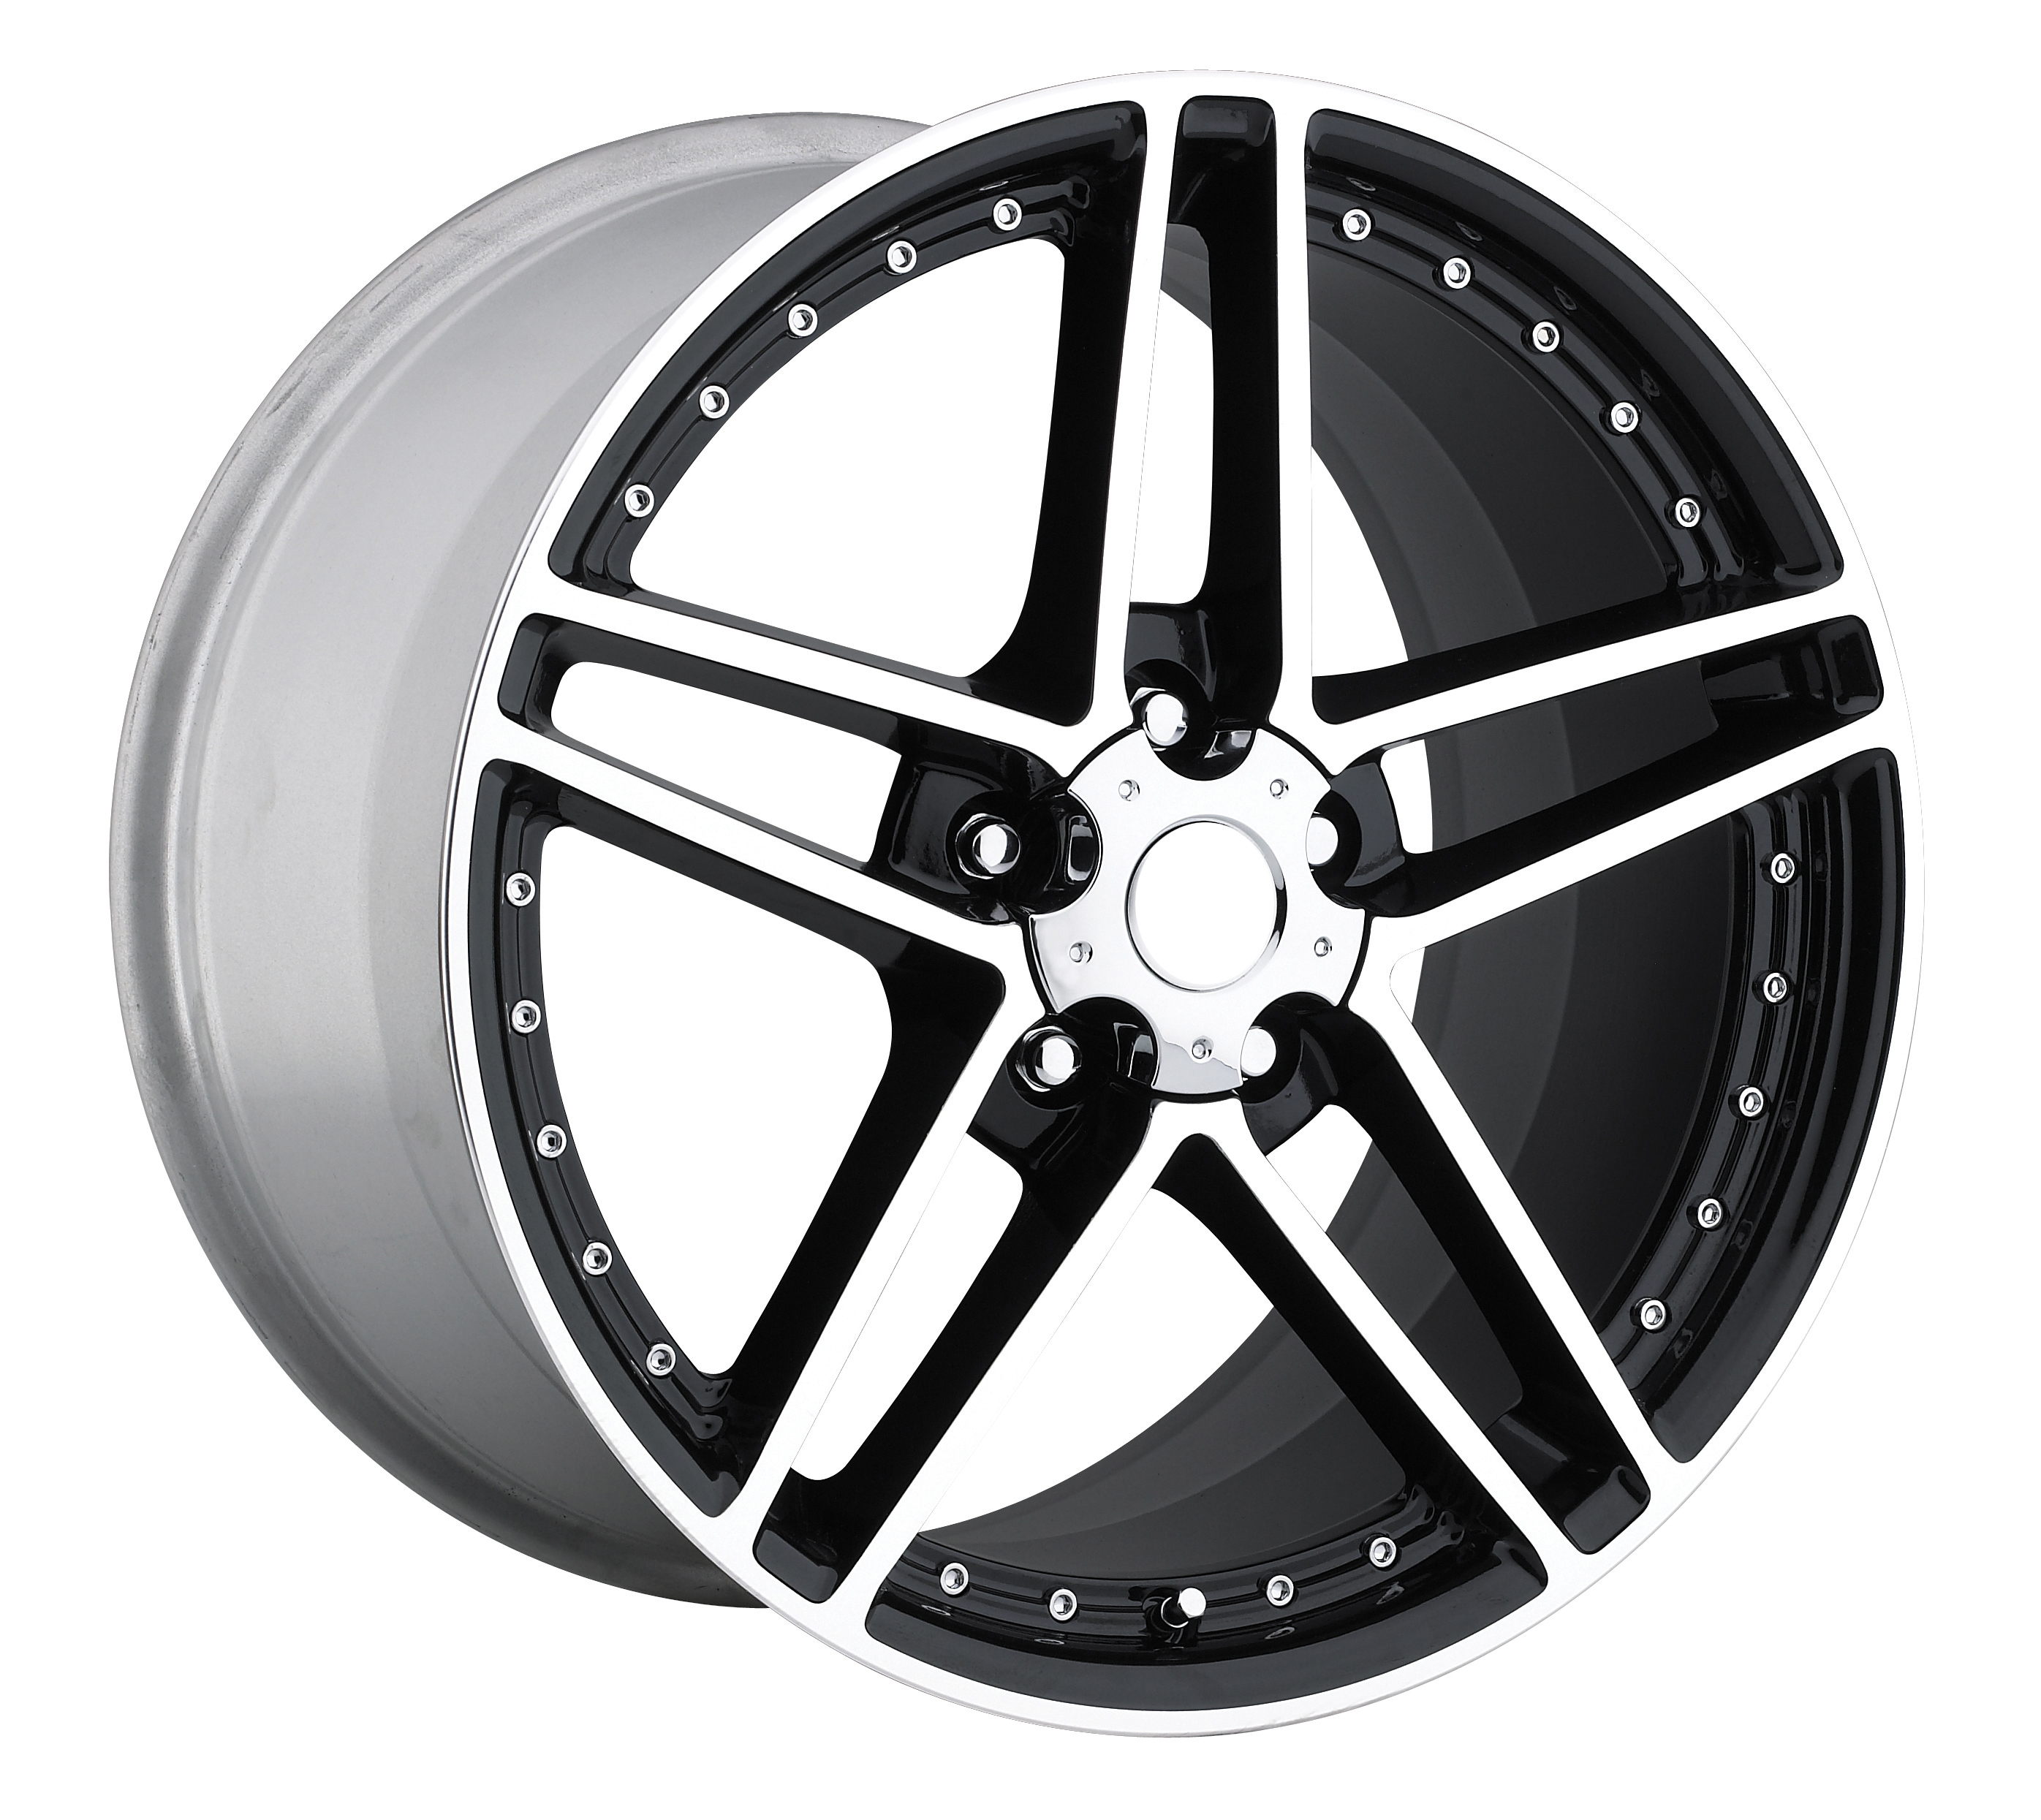 Chevrolet Corvette 1997-2012 19x9.5 5x4.75 +57 - C6 Z06 Motorsport Wheel -  Black Machine Face With Cap